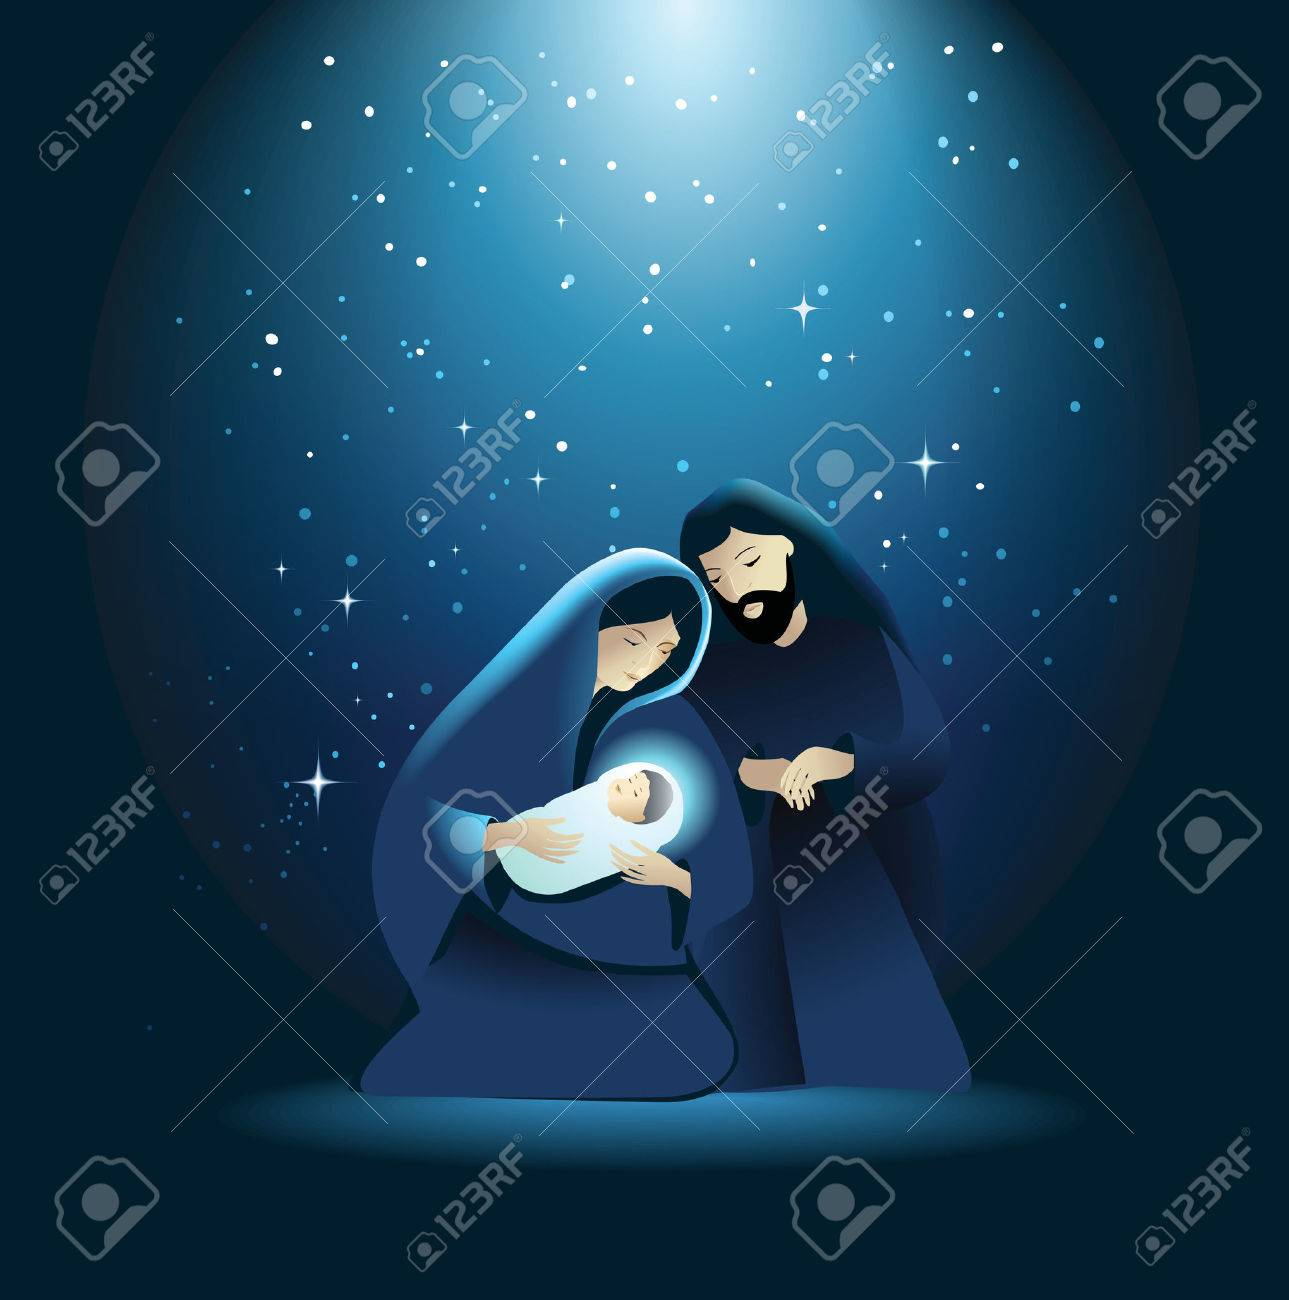 hight resolution of holiday background with holy family